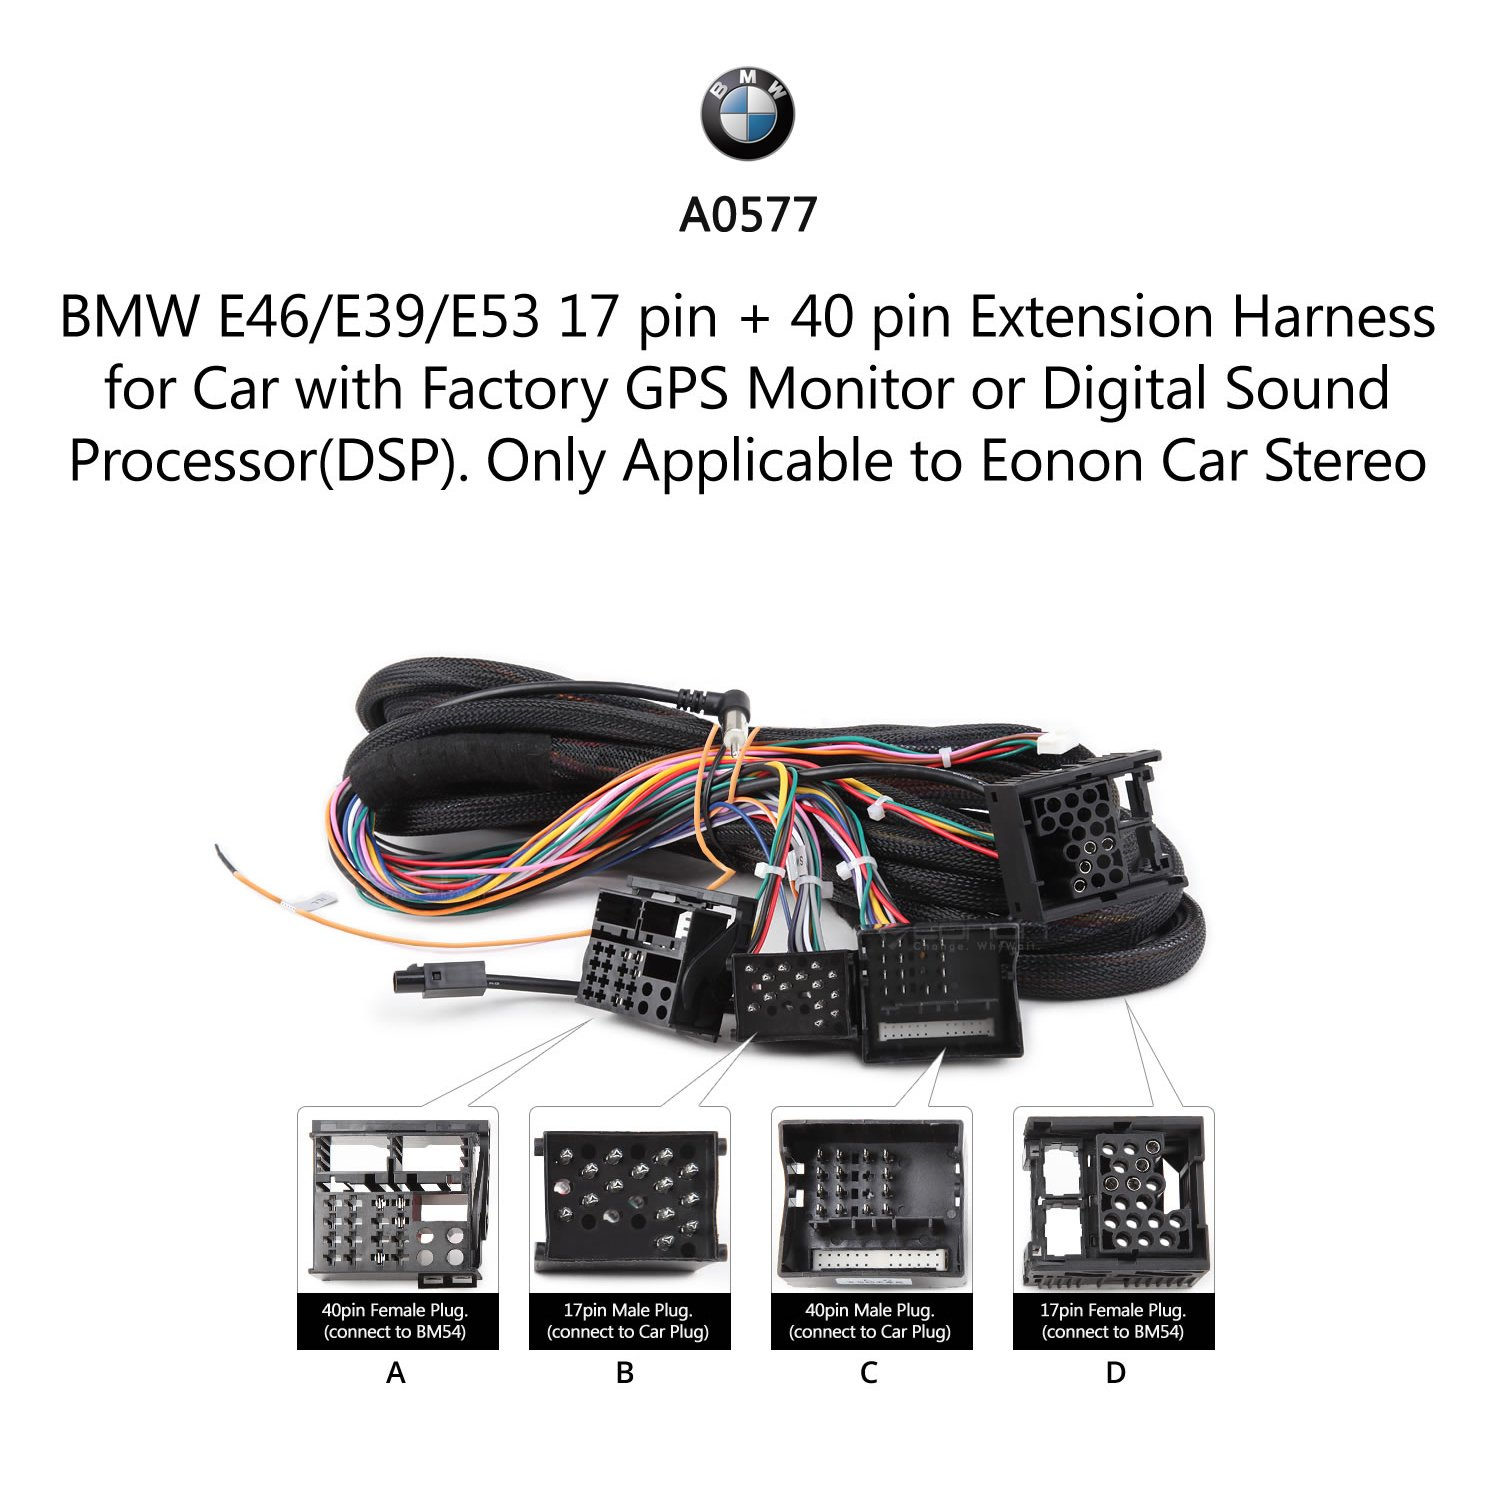 Eonon A0577 Applicable To Bmw E46 E39 E53 17 Pin 40 2002 Wiring Extended Installation Harness For